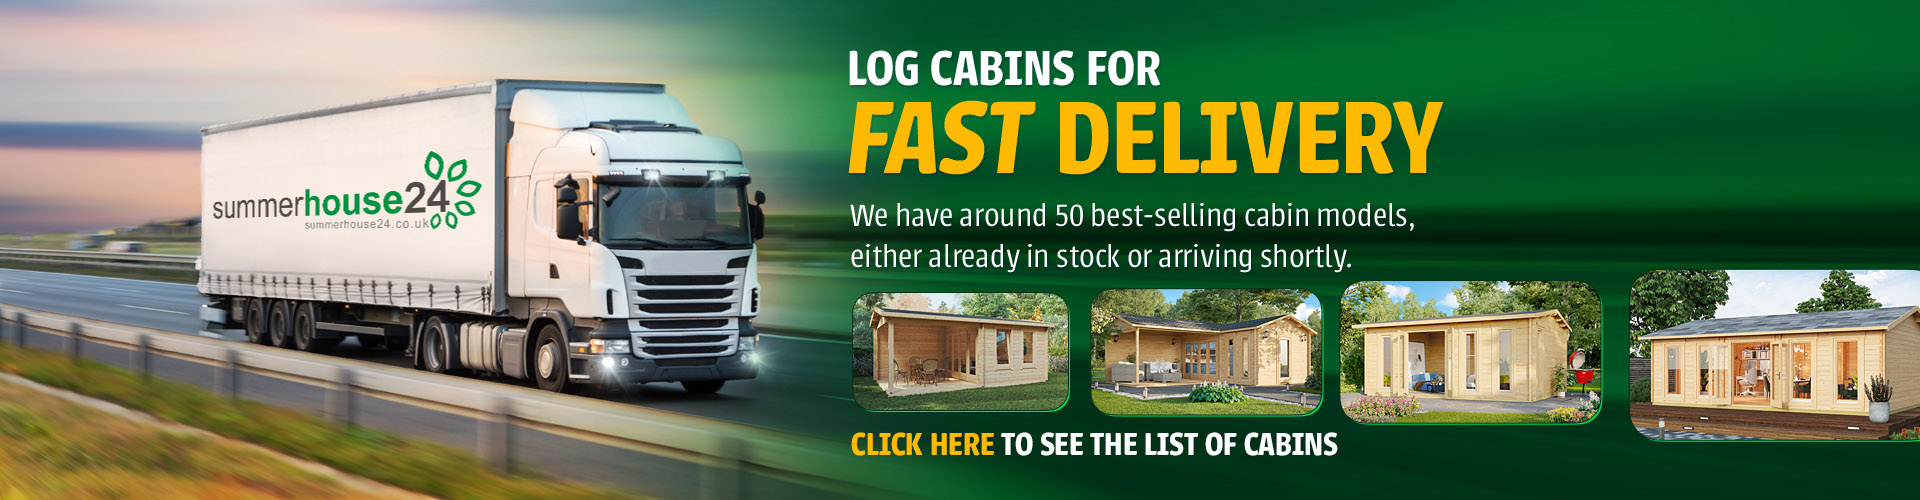 We have around 50 best-selling cabin models, either already in stock or arriving shortly.